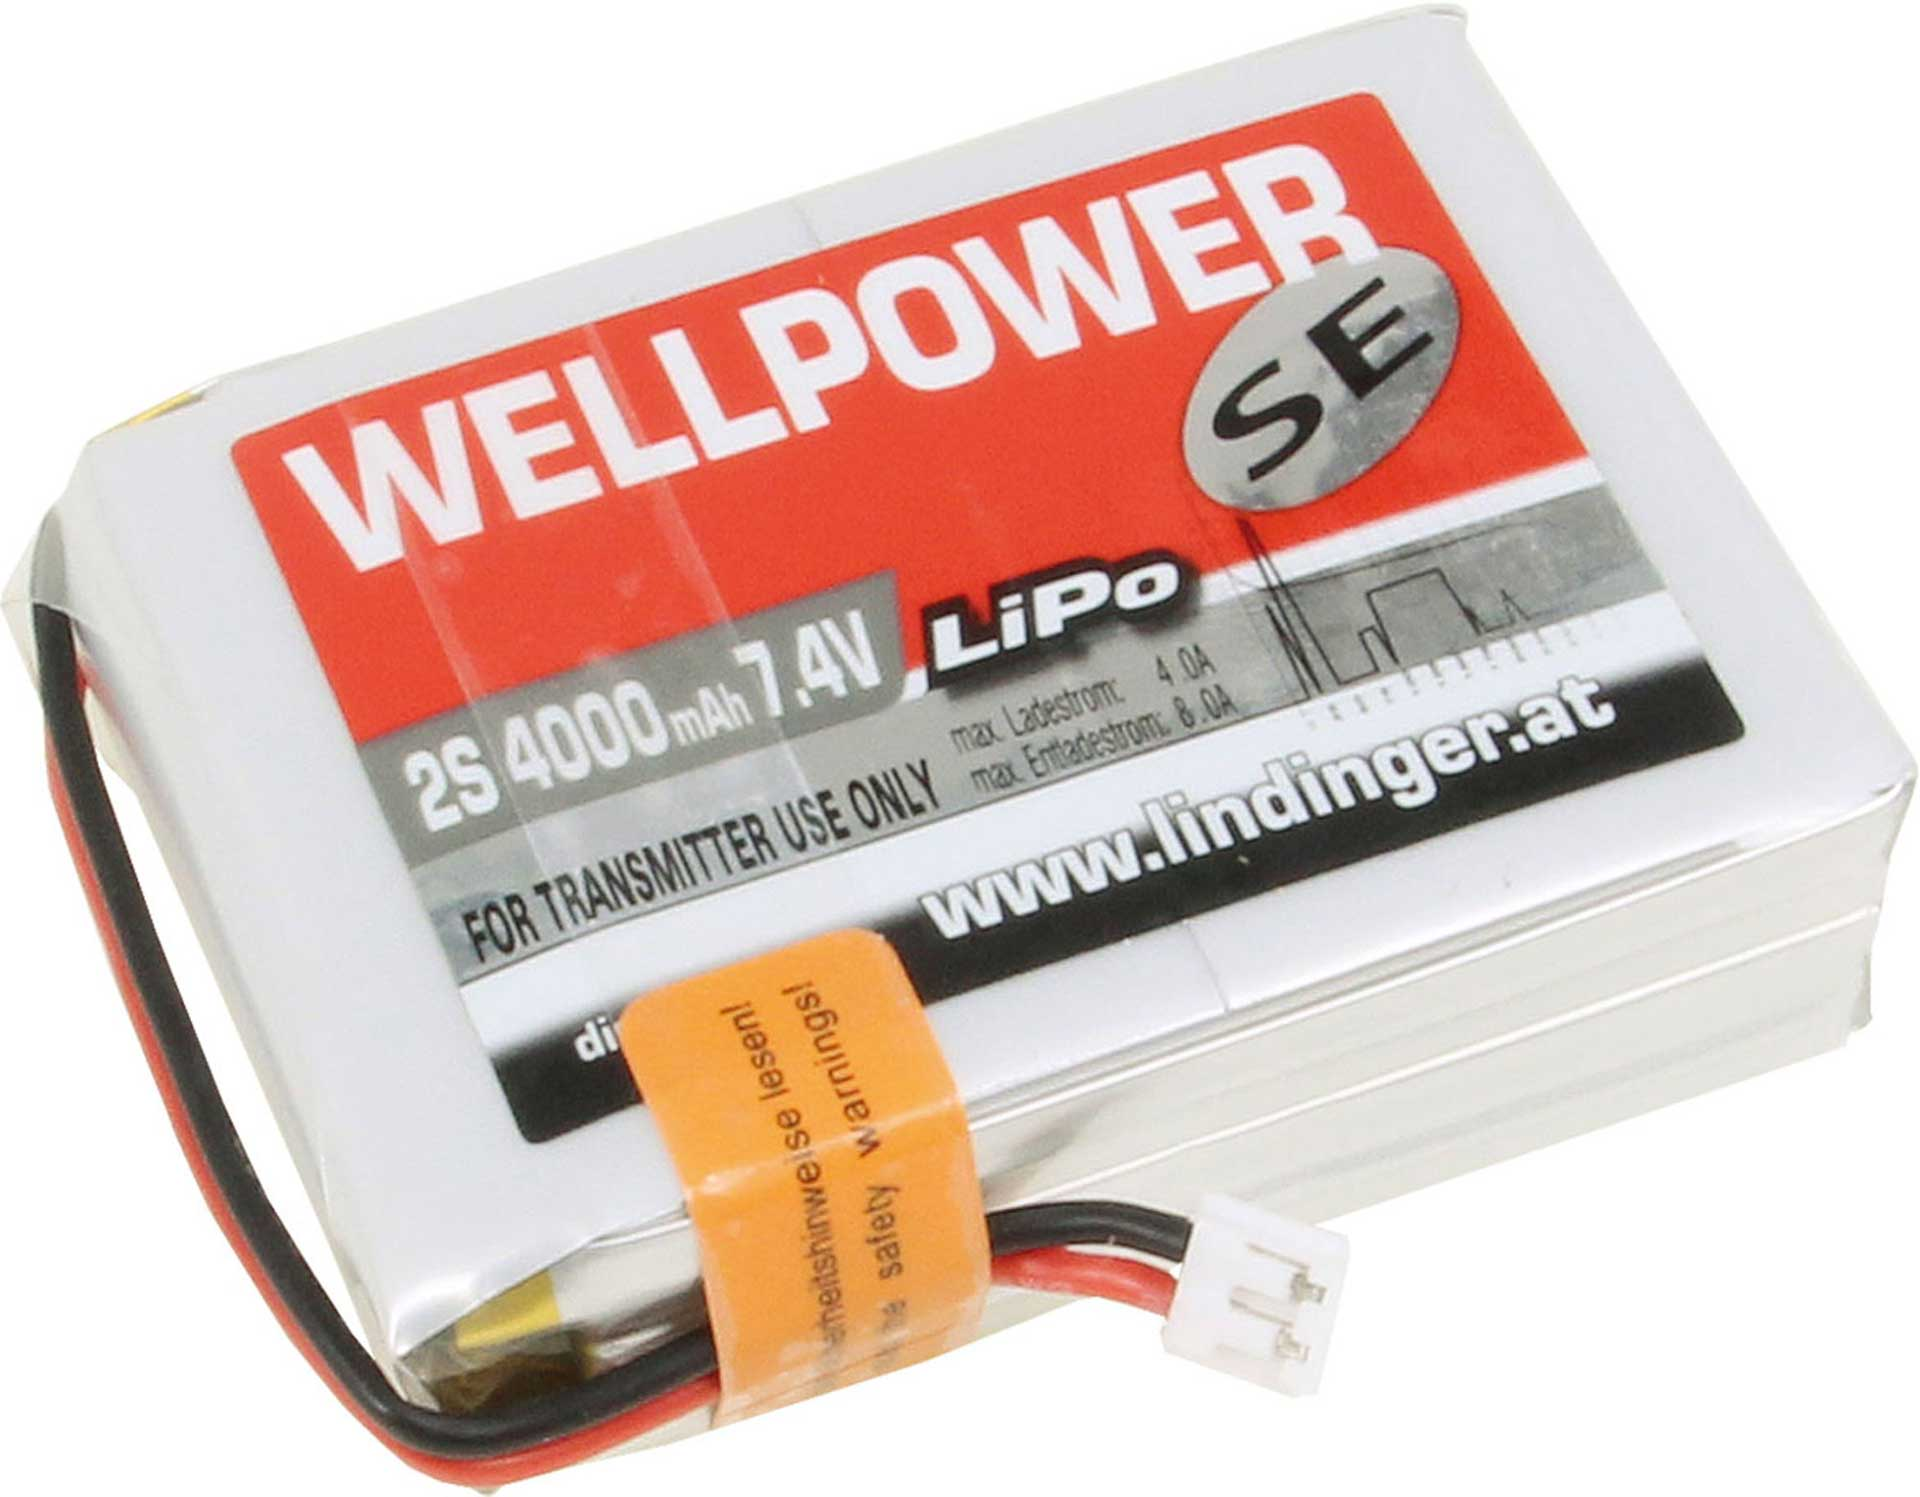 WELLPOWER SE S-AKKU 4000MAH/7,4V DX7/DX8